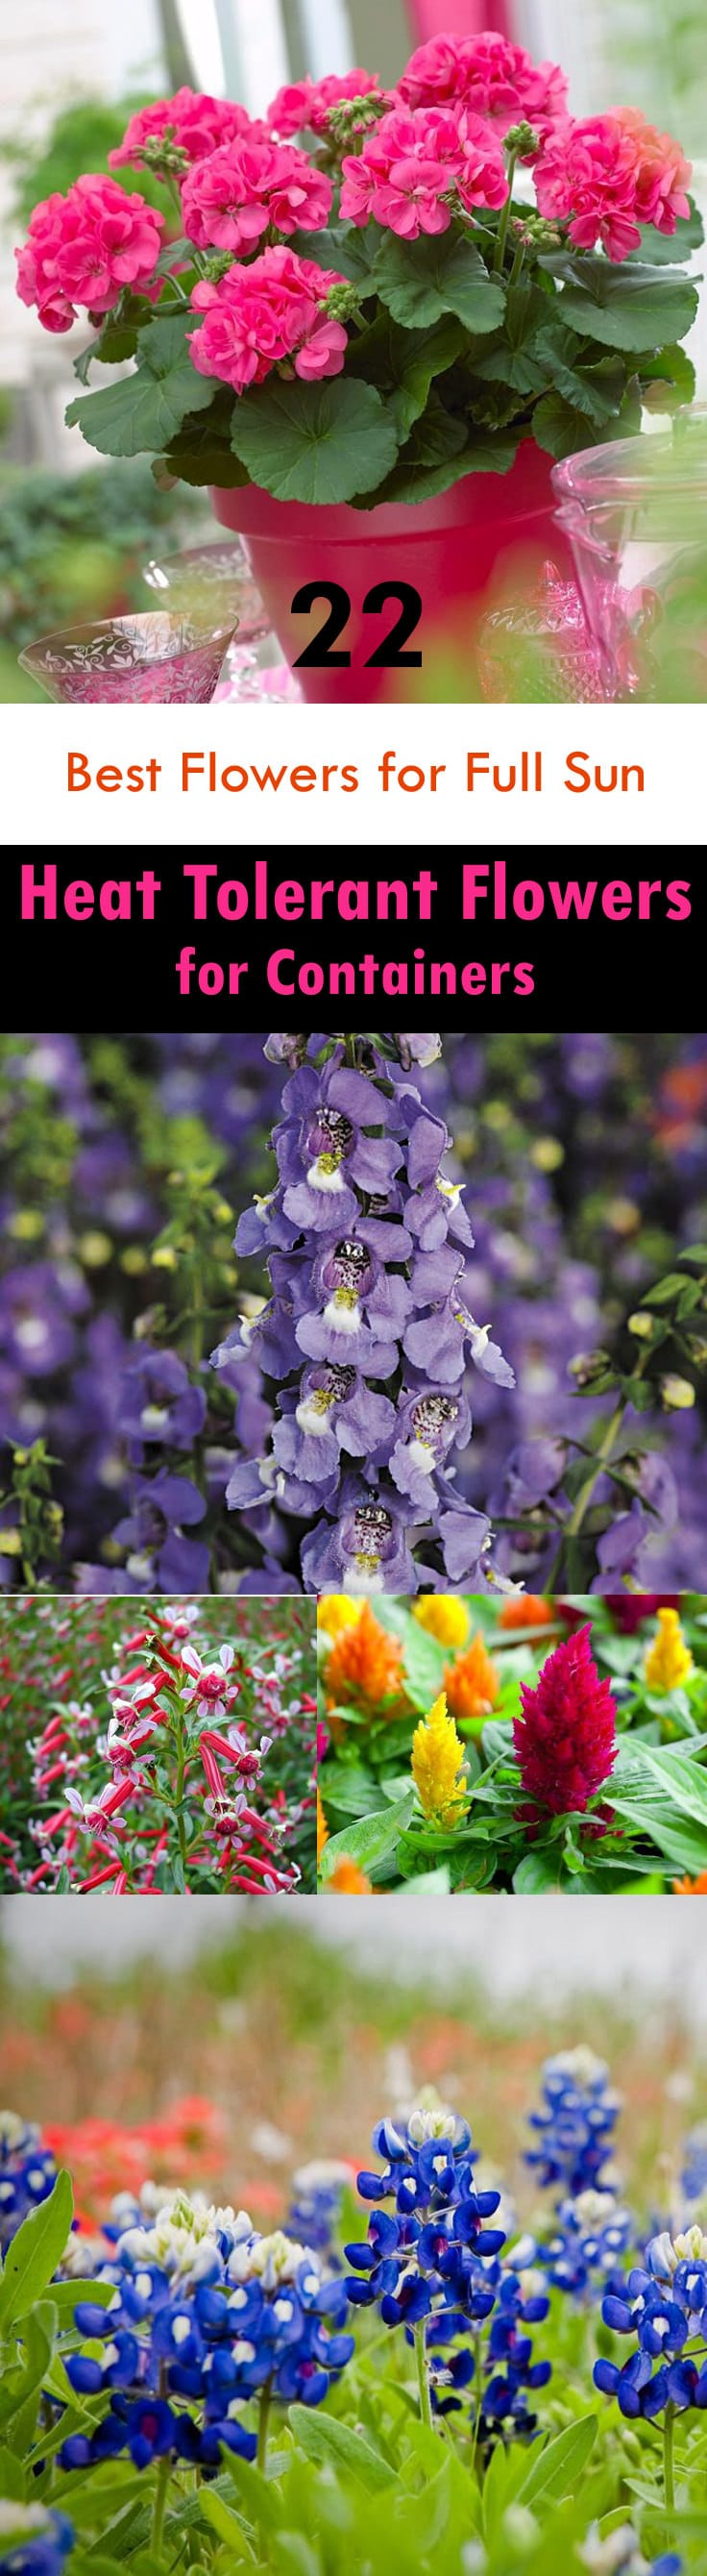 22 best flowers for full sun heat tolerant flowers for containers if youre searching for the best flowers for full sun then see our list izmirmasajfo